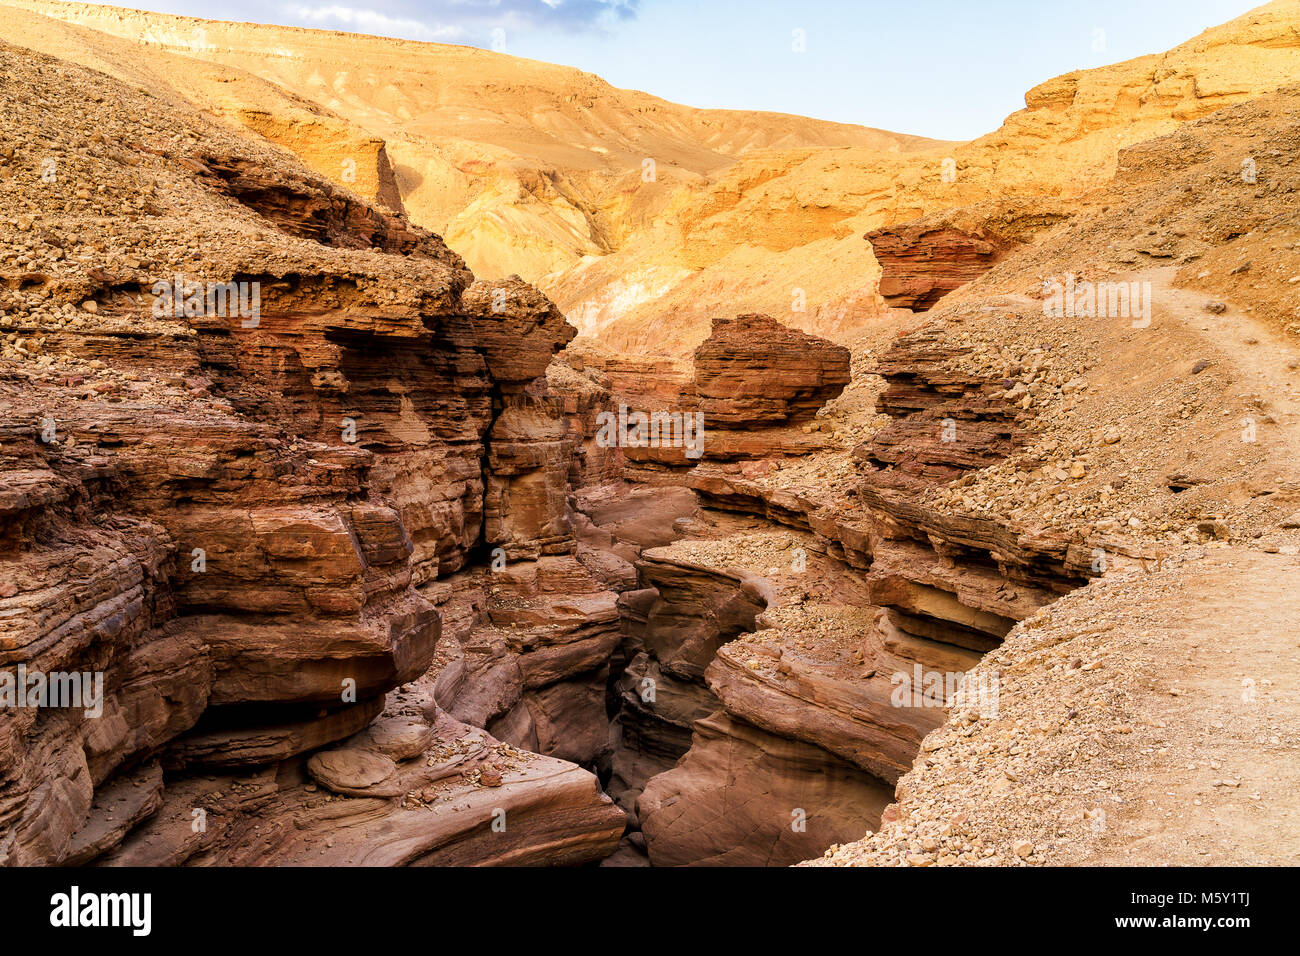 Waved and layered rocks of Red canyon formed and eroded by water. Nature reserve near Eilat city, Negev desert in - Stock Image